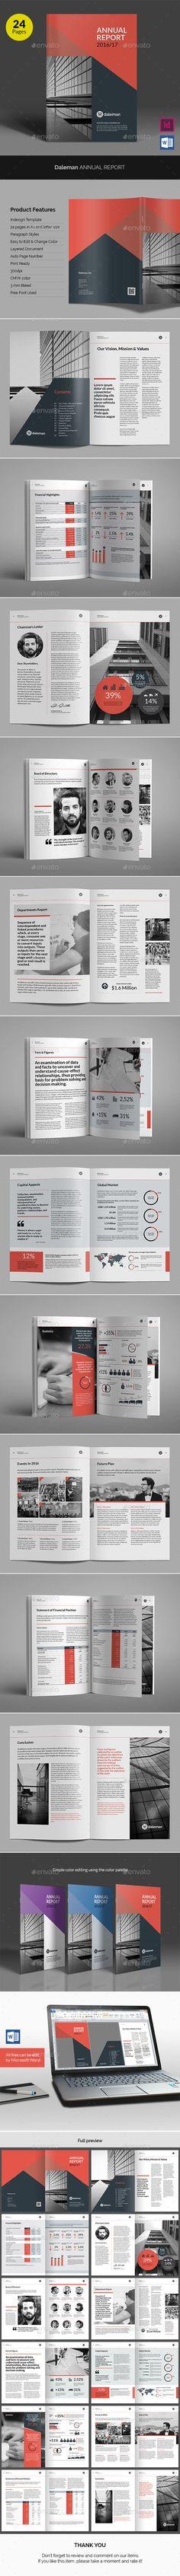 Dalemen Annual Report — InDesign INDD #red #creative • Download ➝ https://graphicriver.net/item/dalemen-annual-report/19256764?ref=pxcr